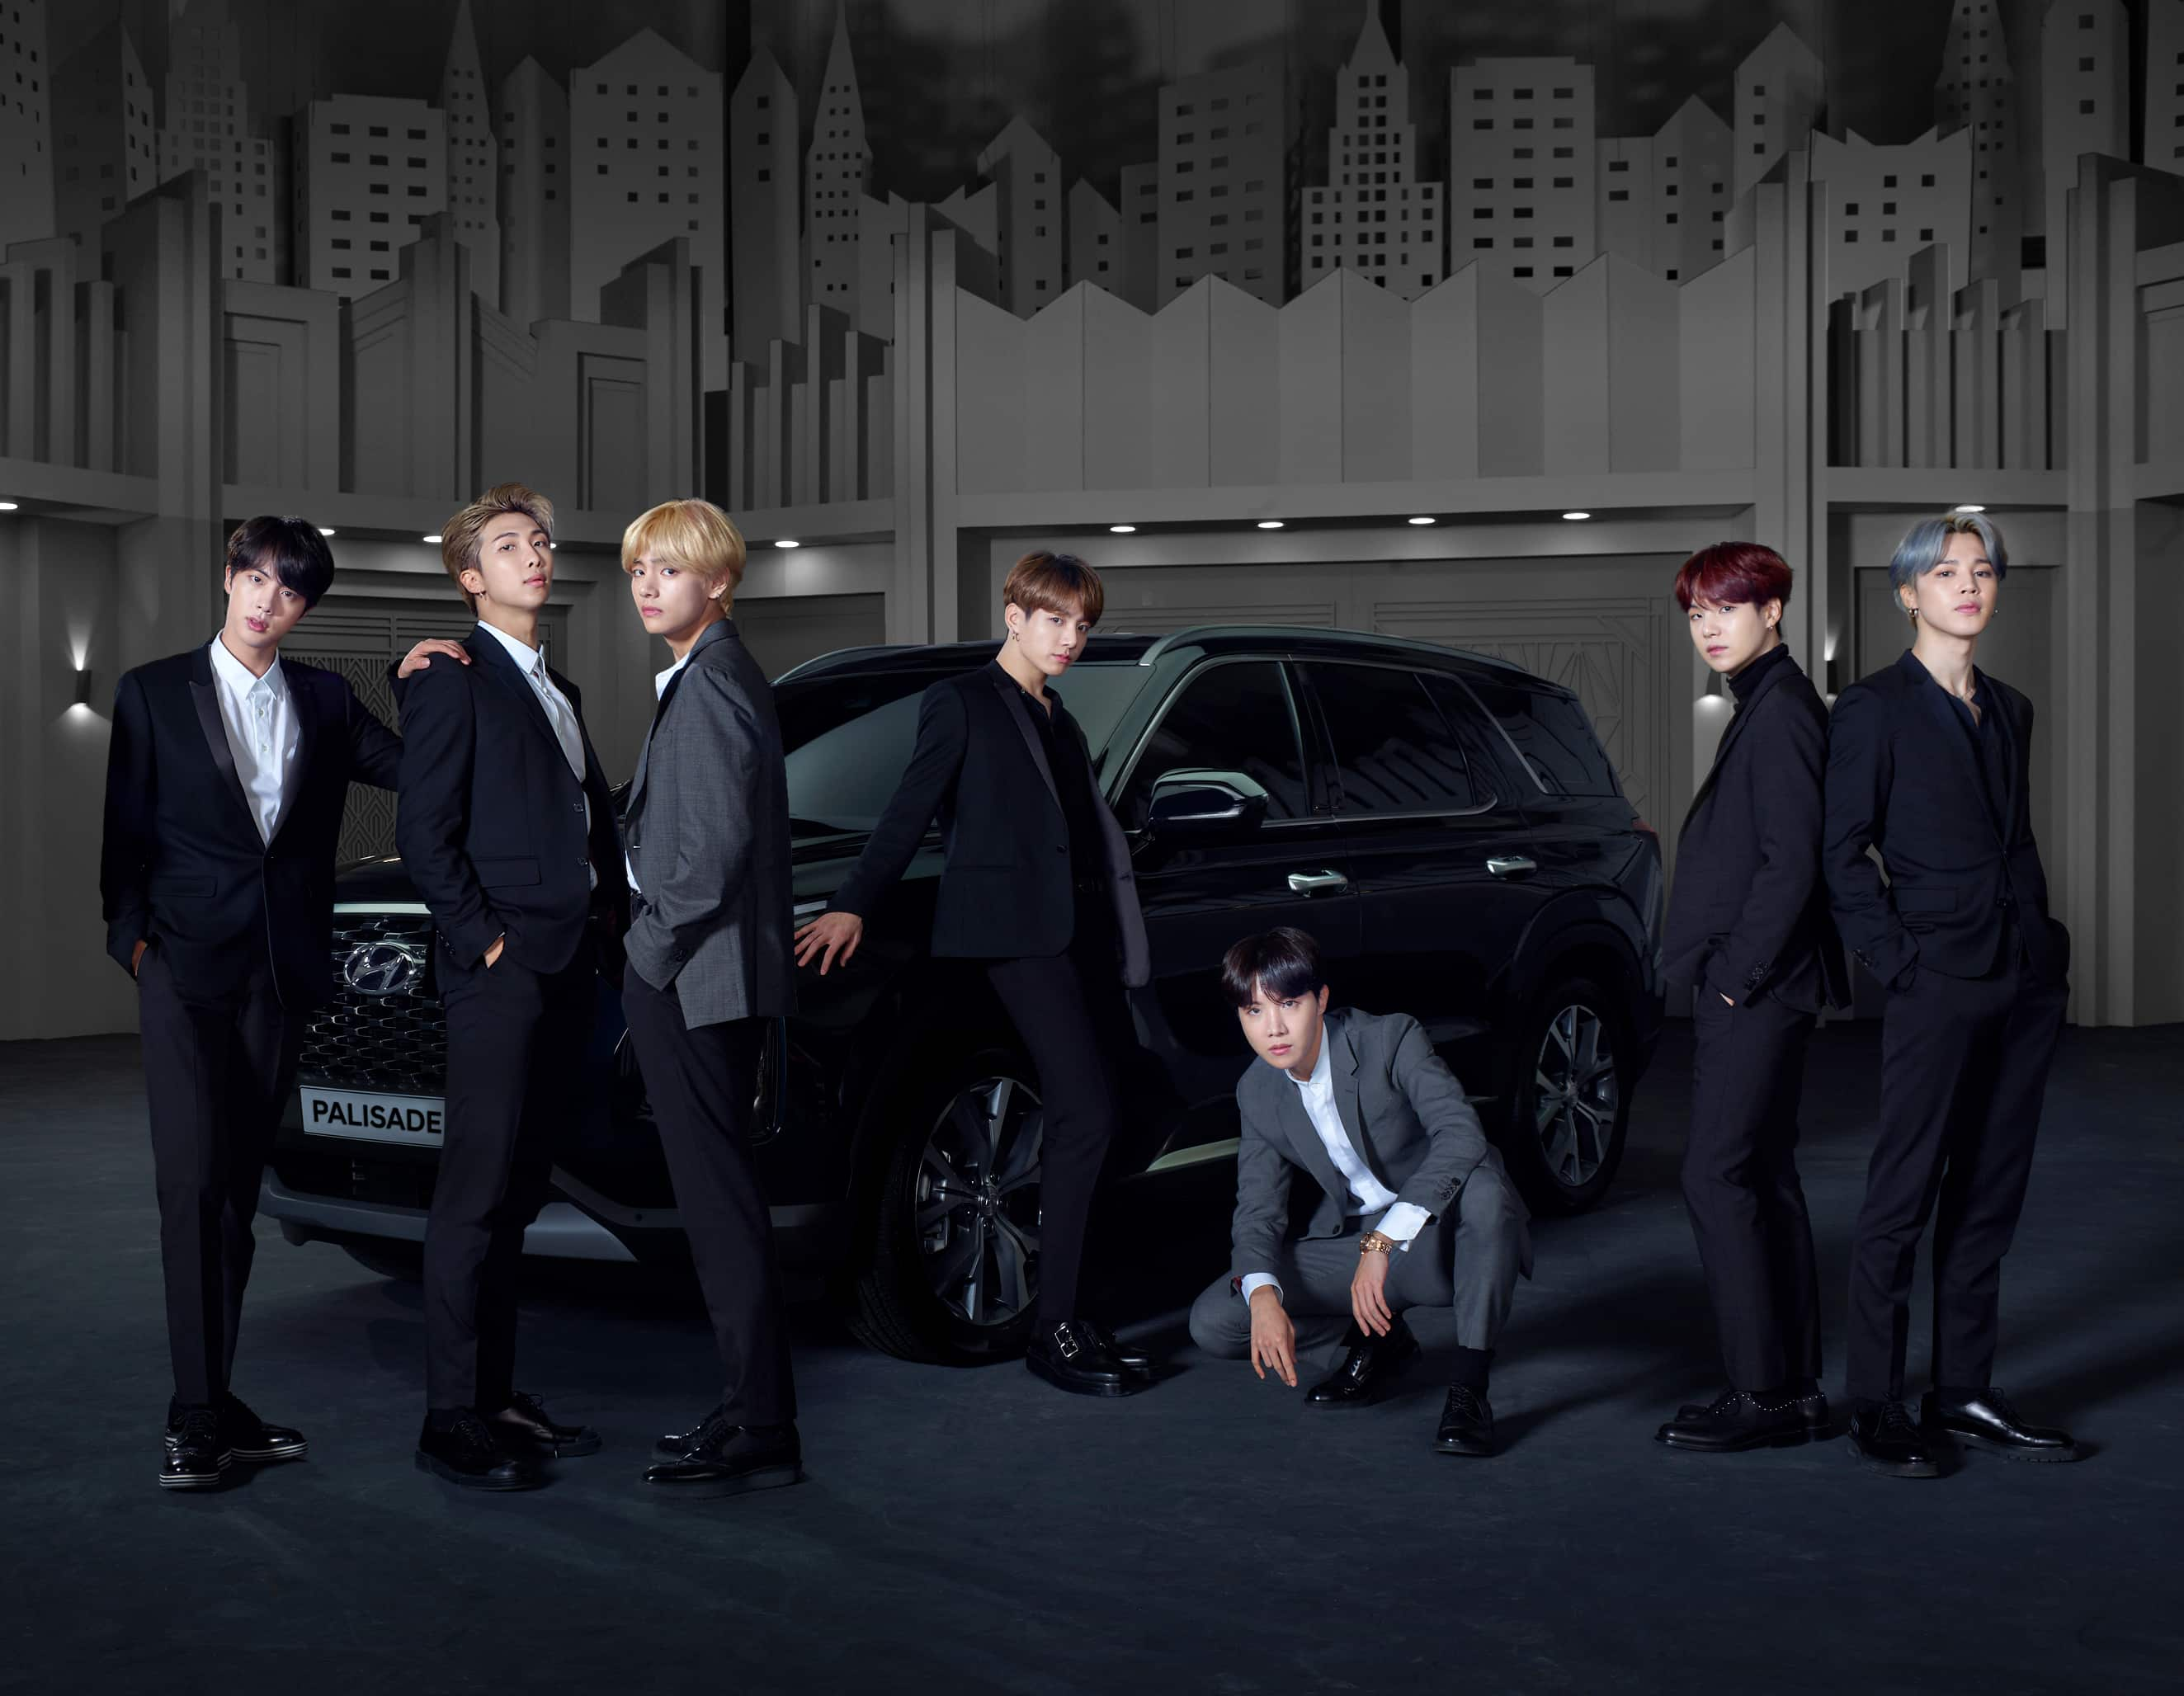 Hyundai Motor Appoints BTS as Global Brand Ambassadors of the All-New Flagship SUV 'Palisade'